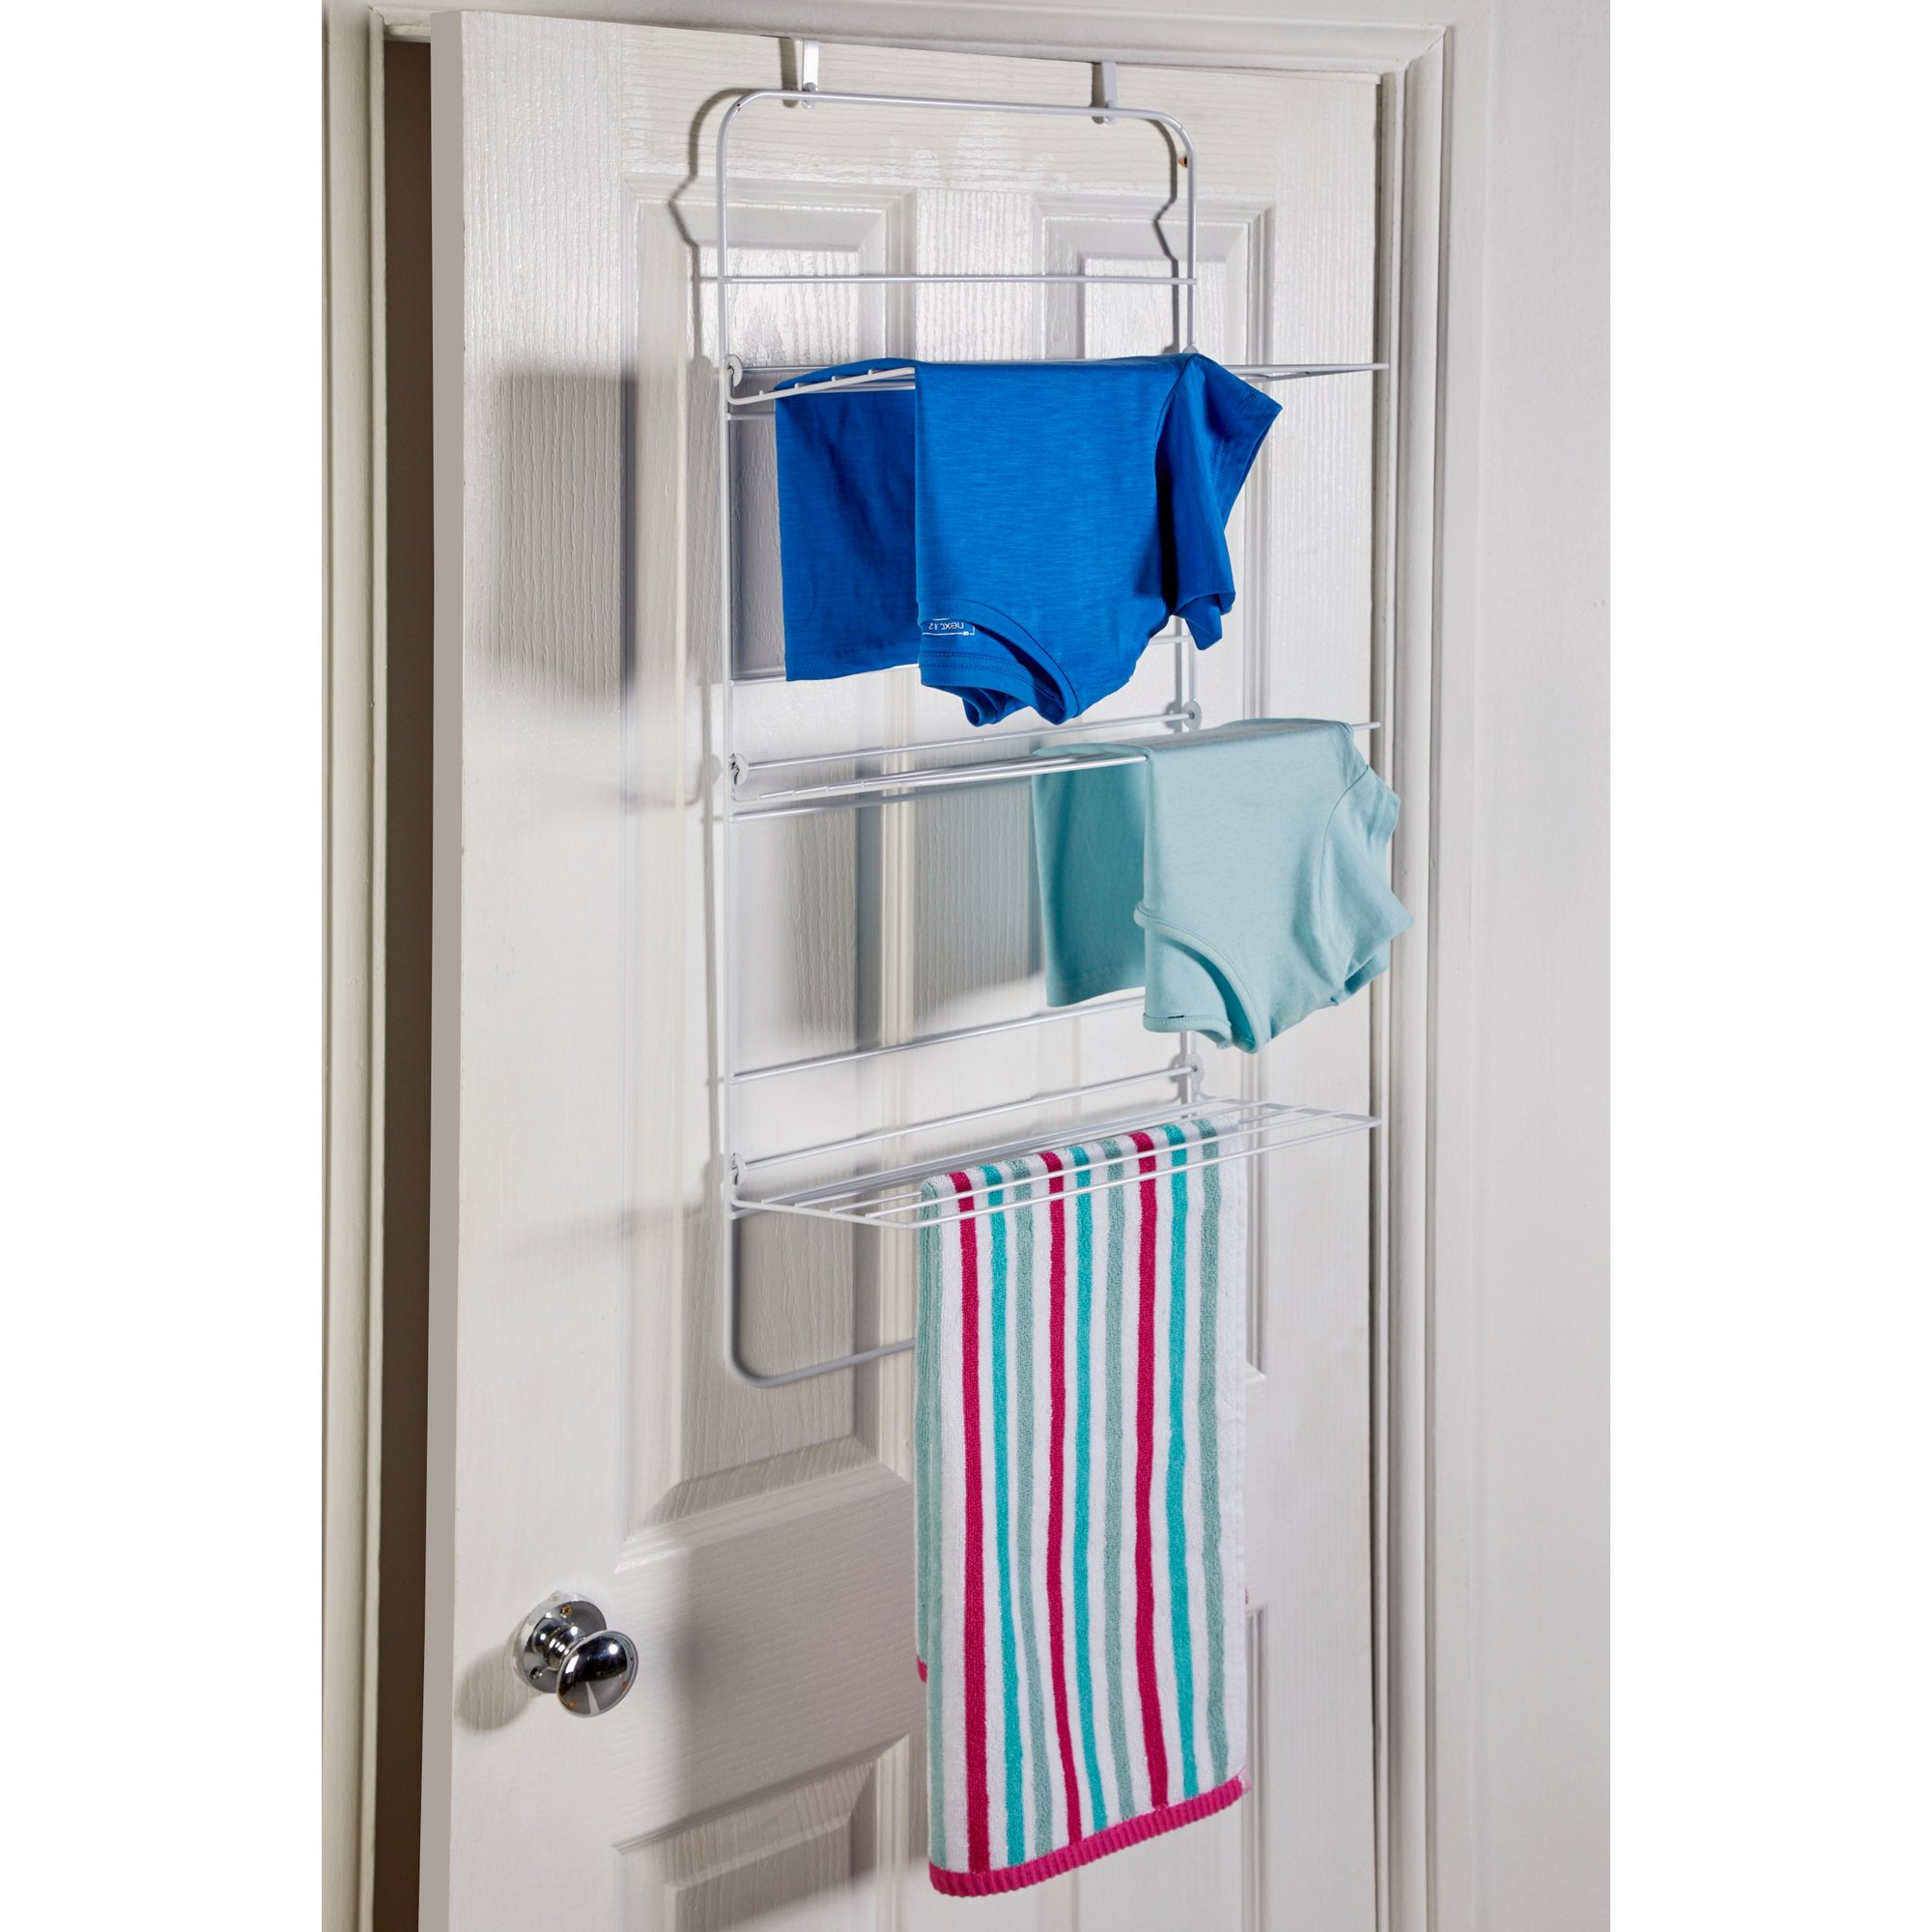 Image of Over-The-Door Airer